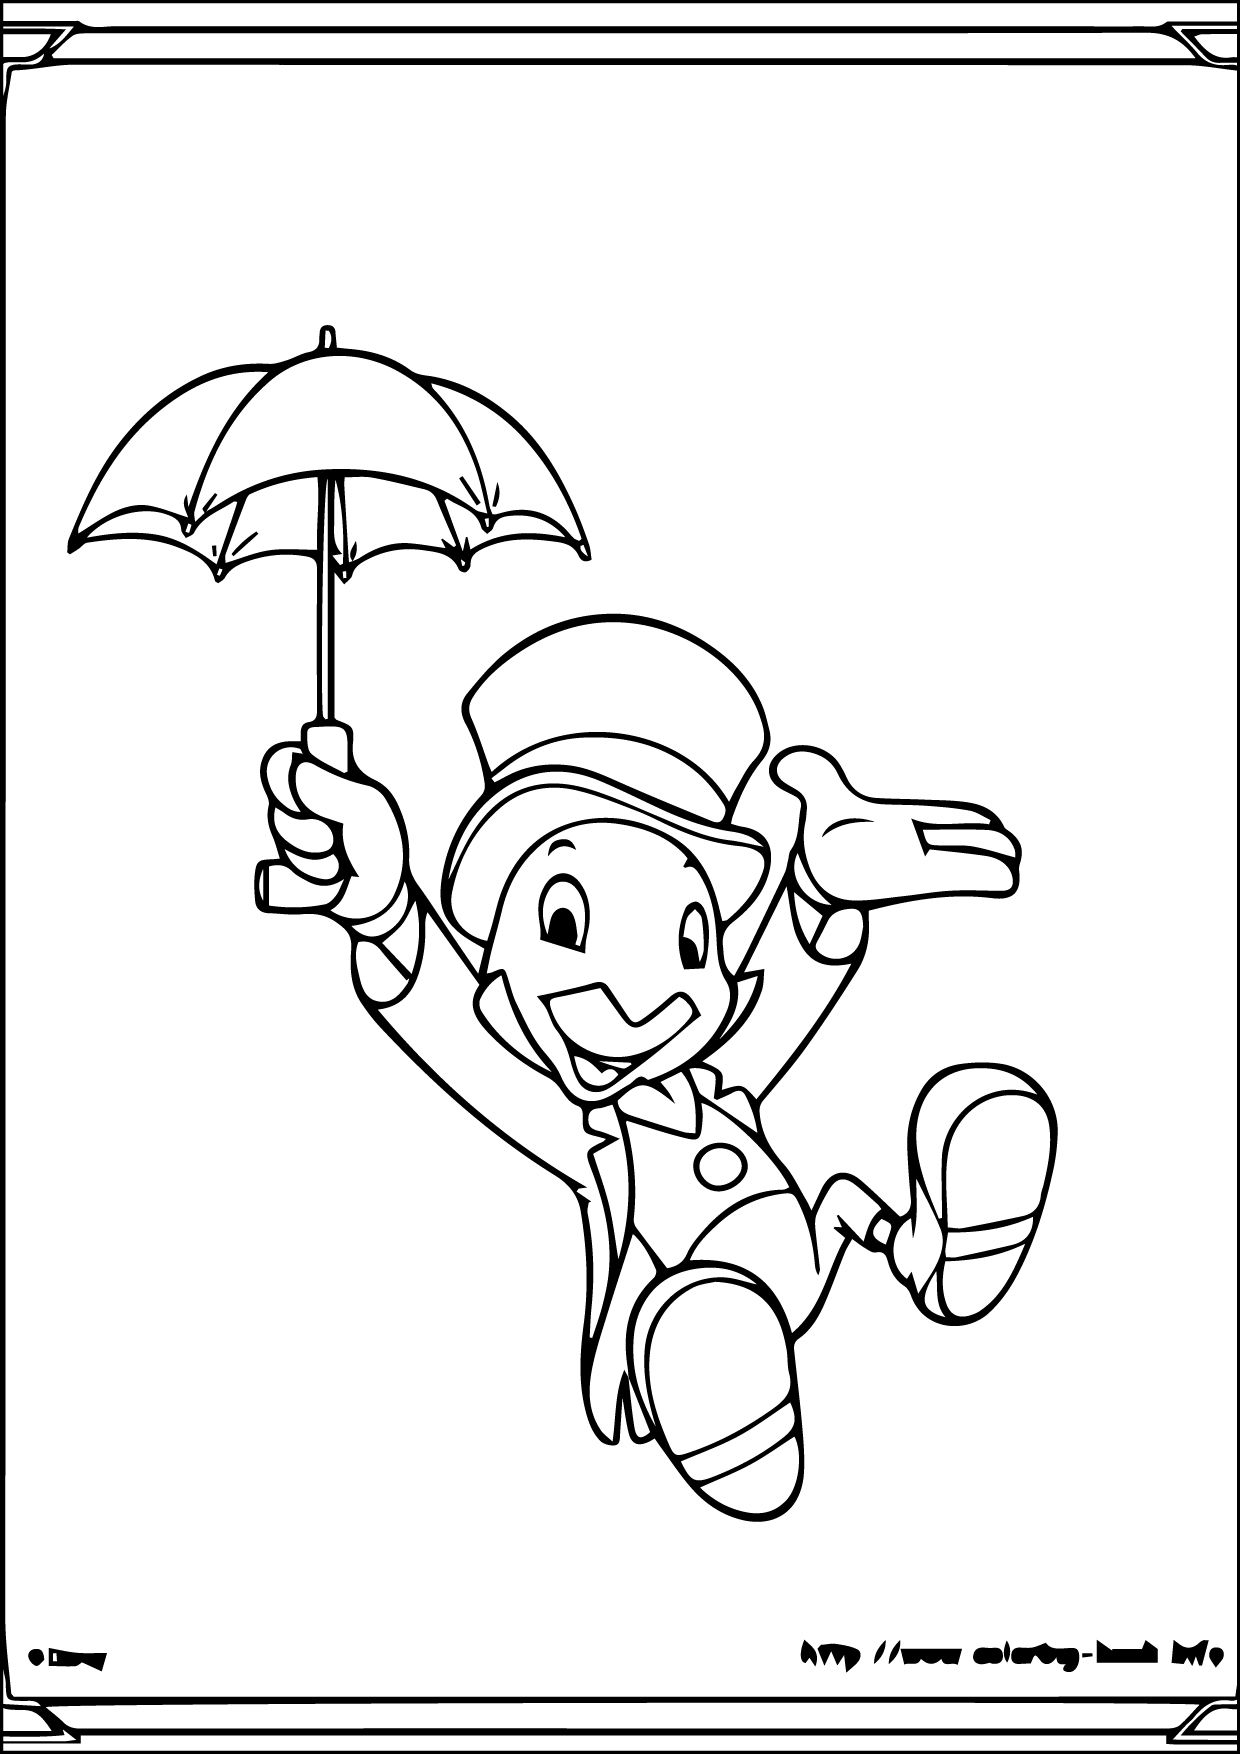 cool coloring page 06-10-2015_020630 | Mcoloring | Pinterest